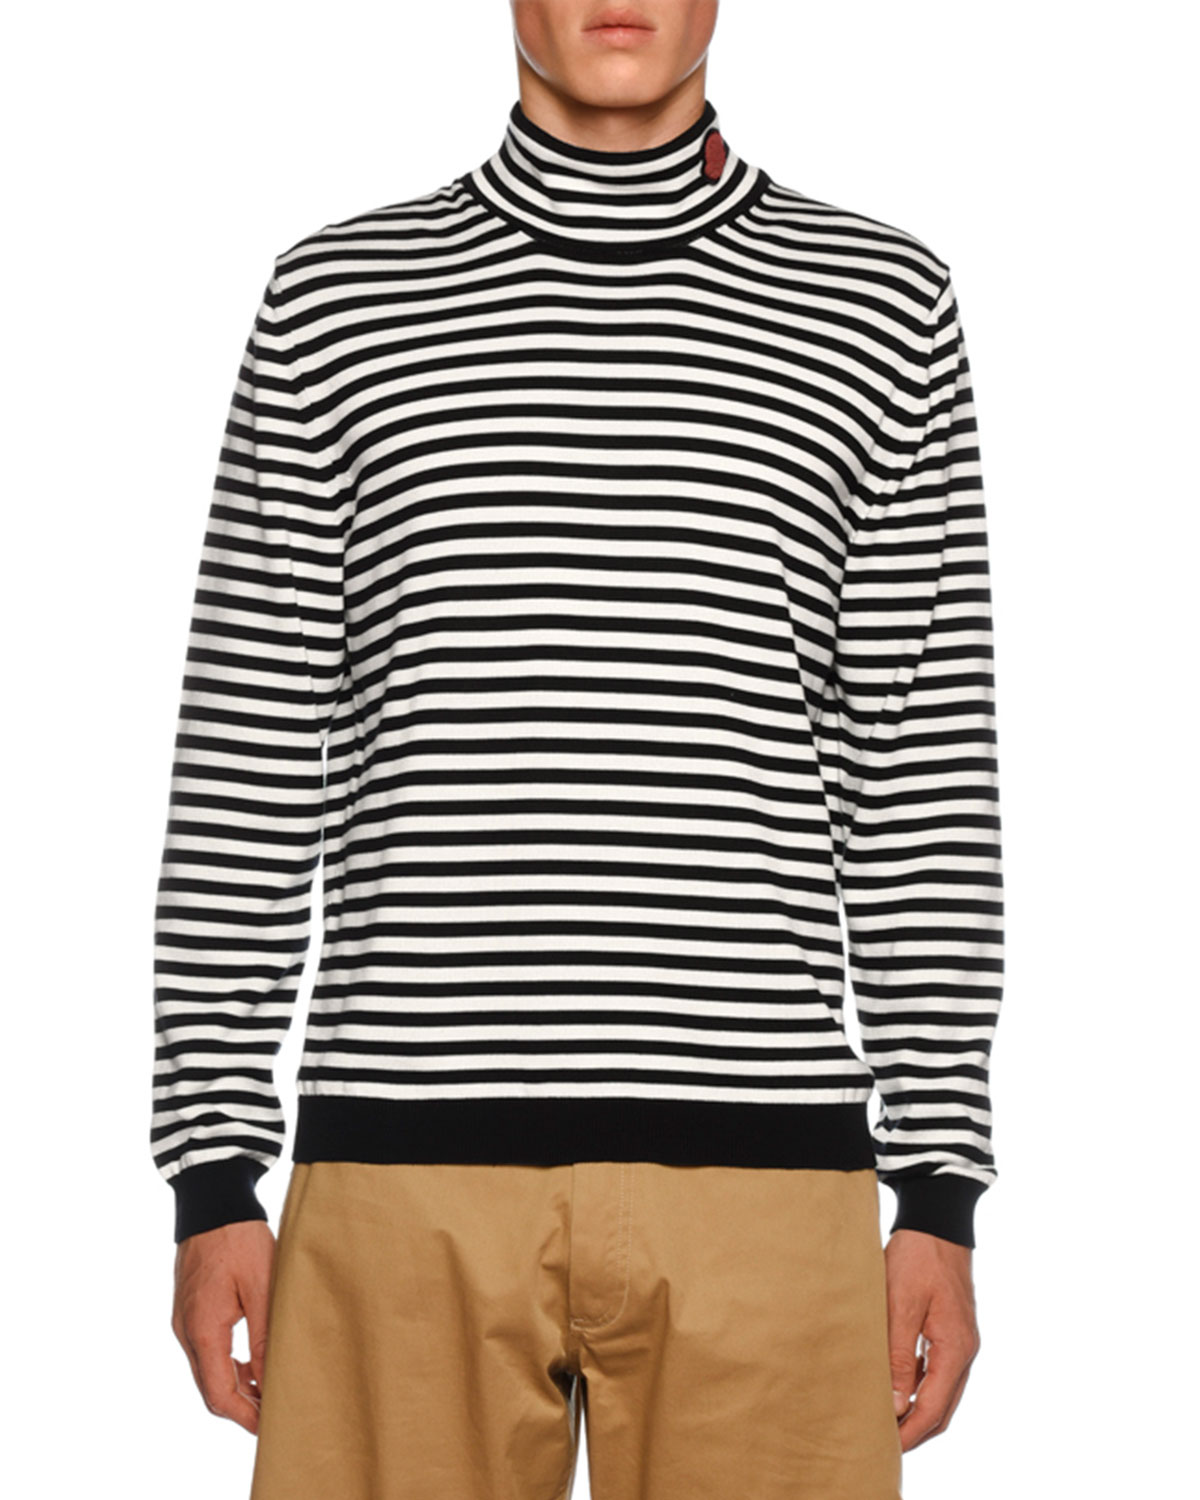 Men's Striped Turtleneck Sweater by Moncler